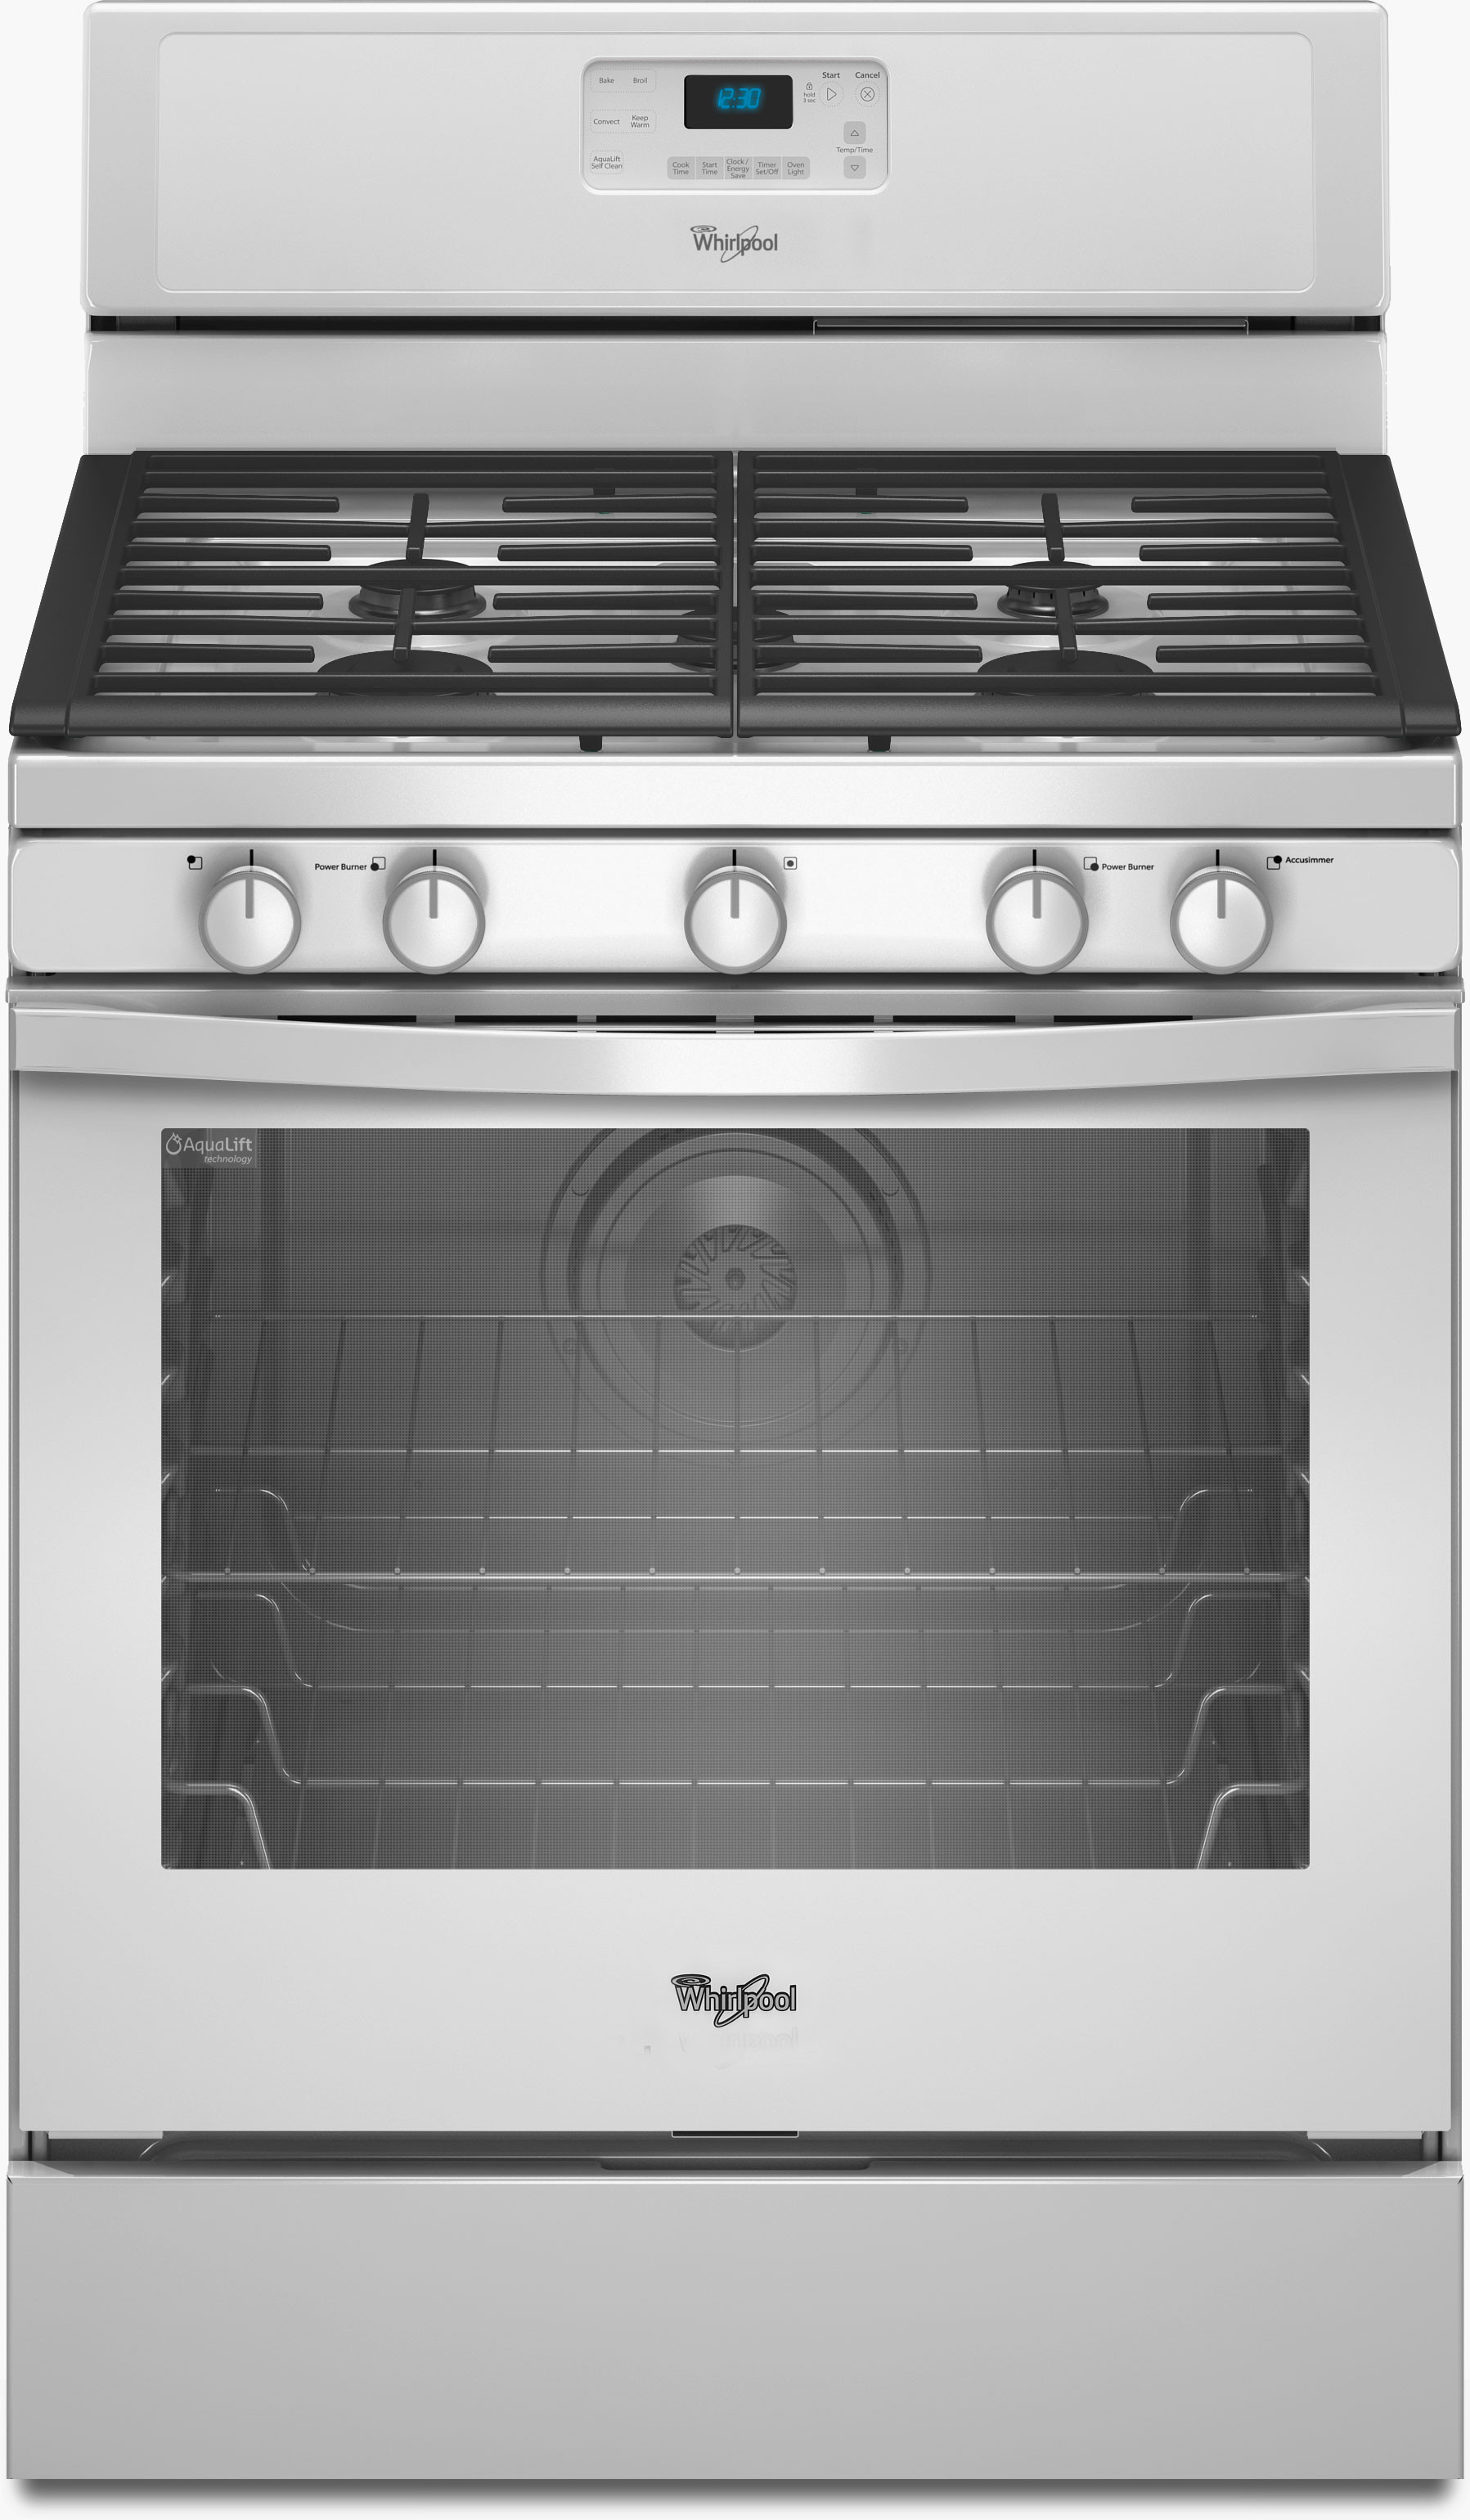 Whirlpool Wfg540h0aw 30 Inch Freestanding Gas Range With 4